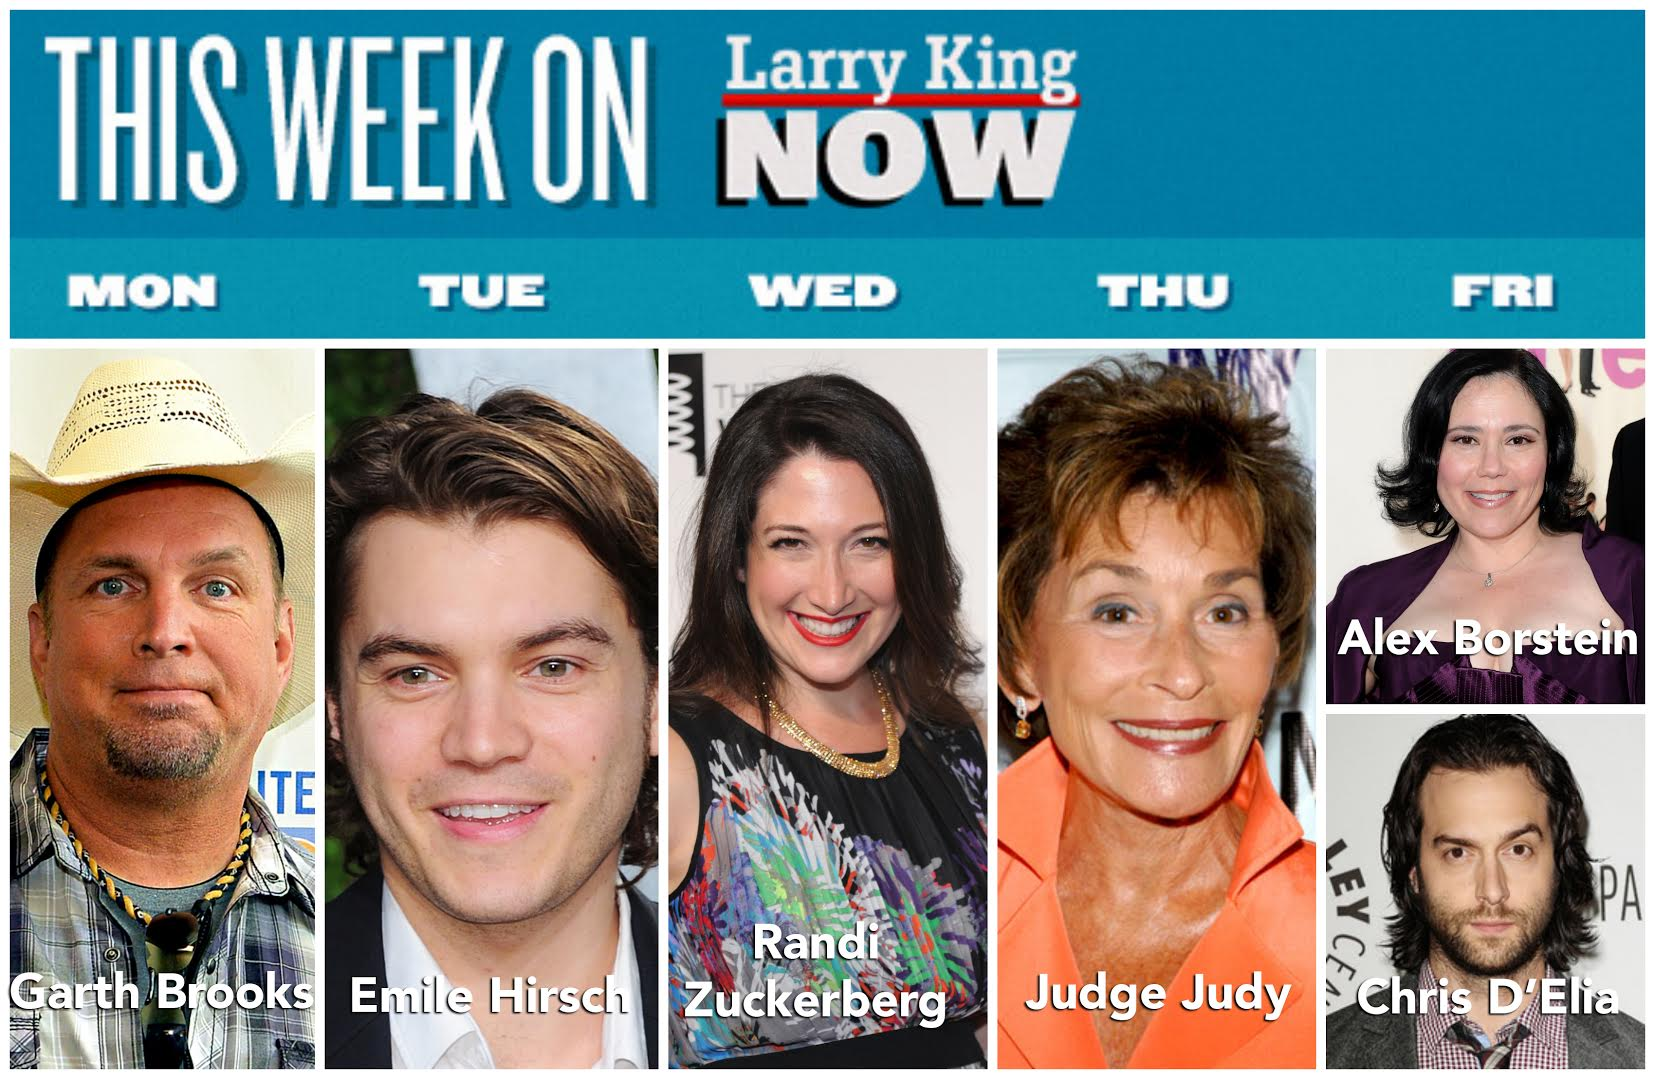 Larry King Now Guests: Garth Brooks, Emile Hirsch, Randi Zuckerberg, Judge Judy, Alex Borstein, Chris D'Elia